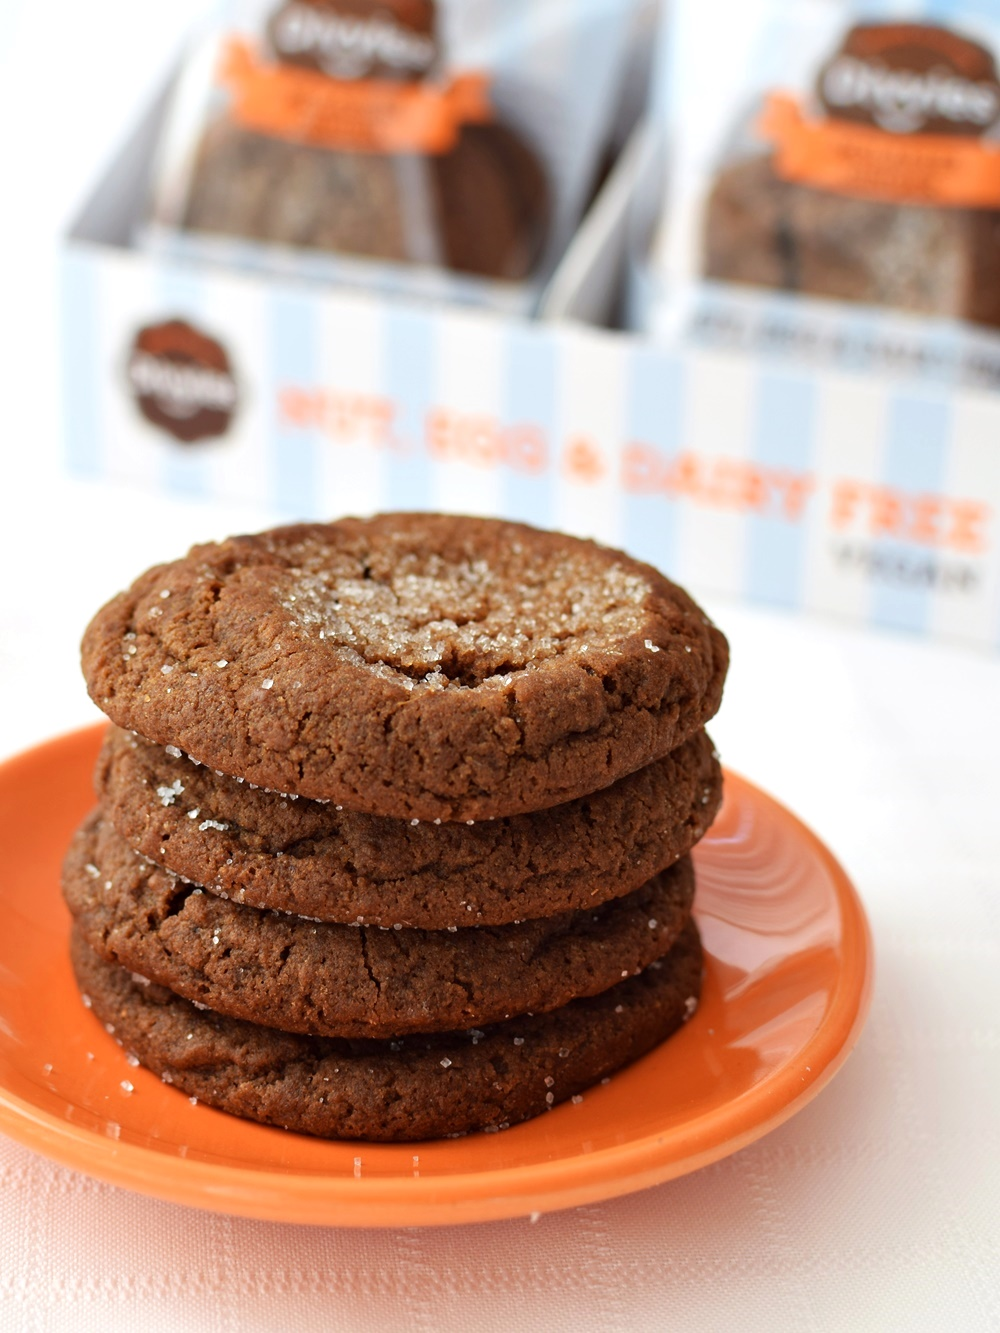 Divvies Bakery Cookies: 2 Amazingly Soft, Chewy Cookies per package (Molasses Ginger pictured) - Nut, Egg and Dairy Free + Vegan